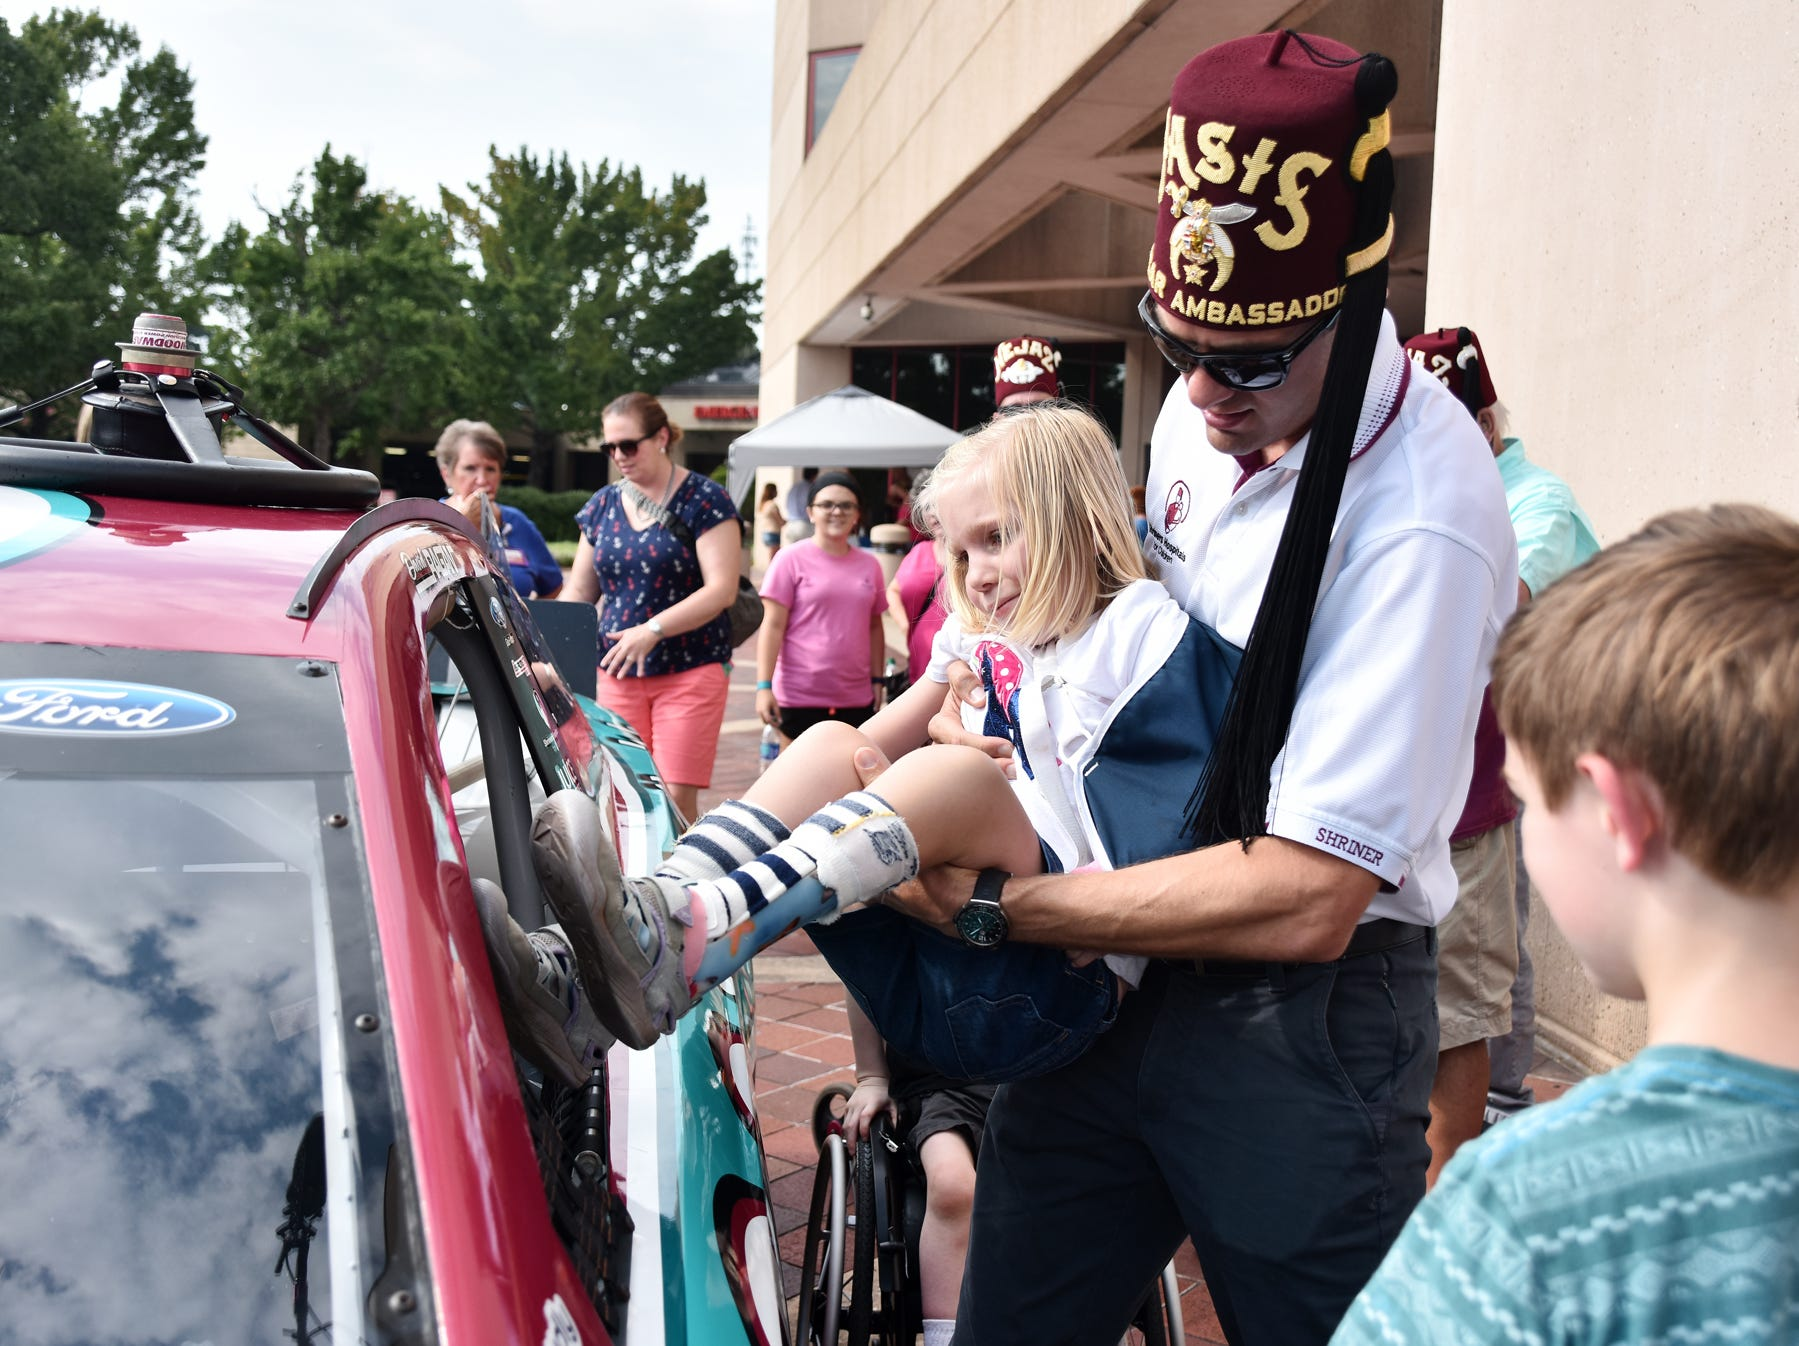 NASCAR driver David Ragan helps Ana Pabst, 5, into a race car at the Shriners Hospital for Children in Greenville on August 15, 2018.